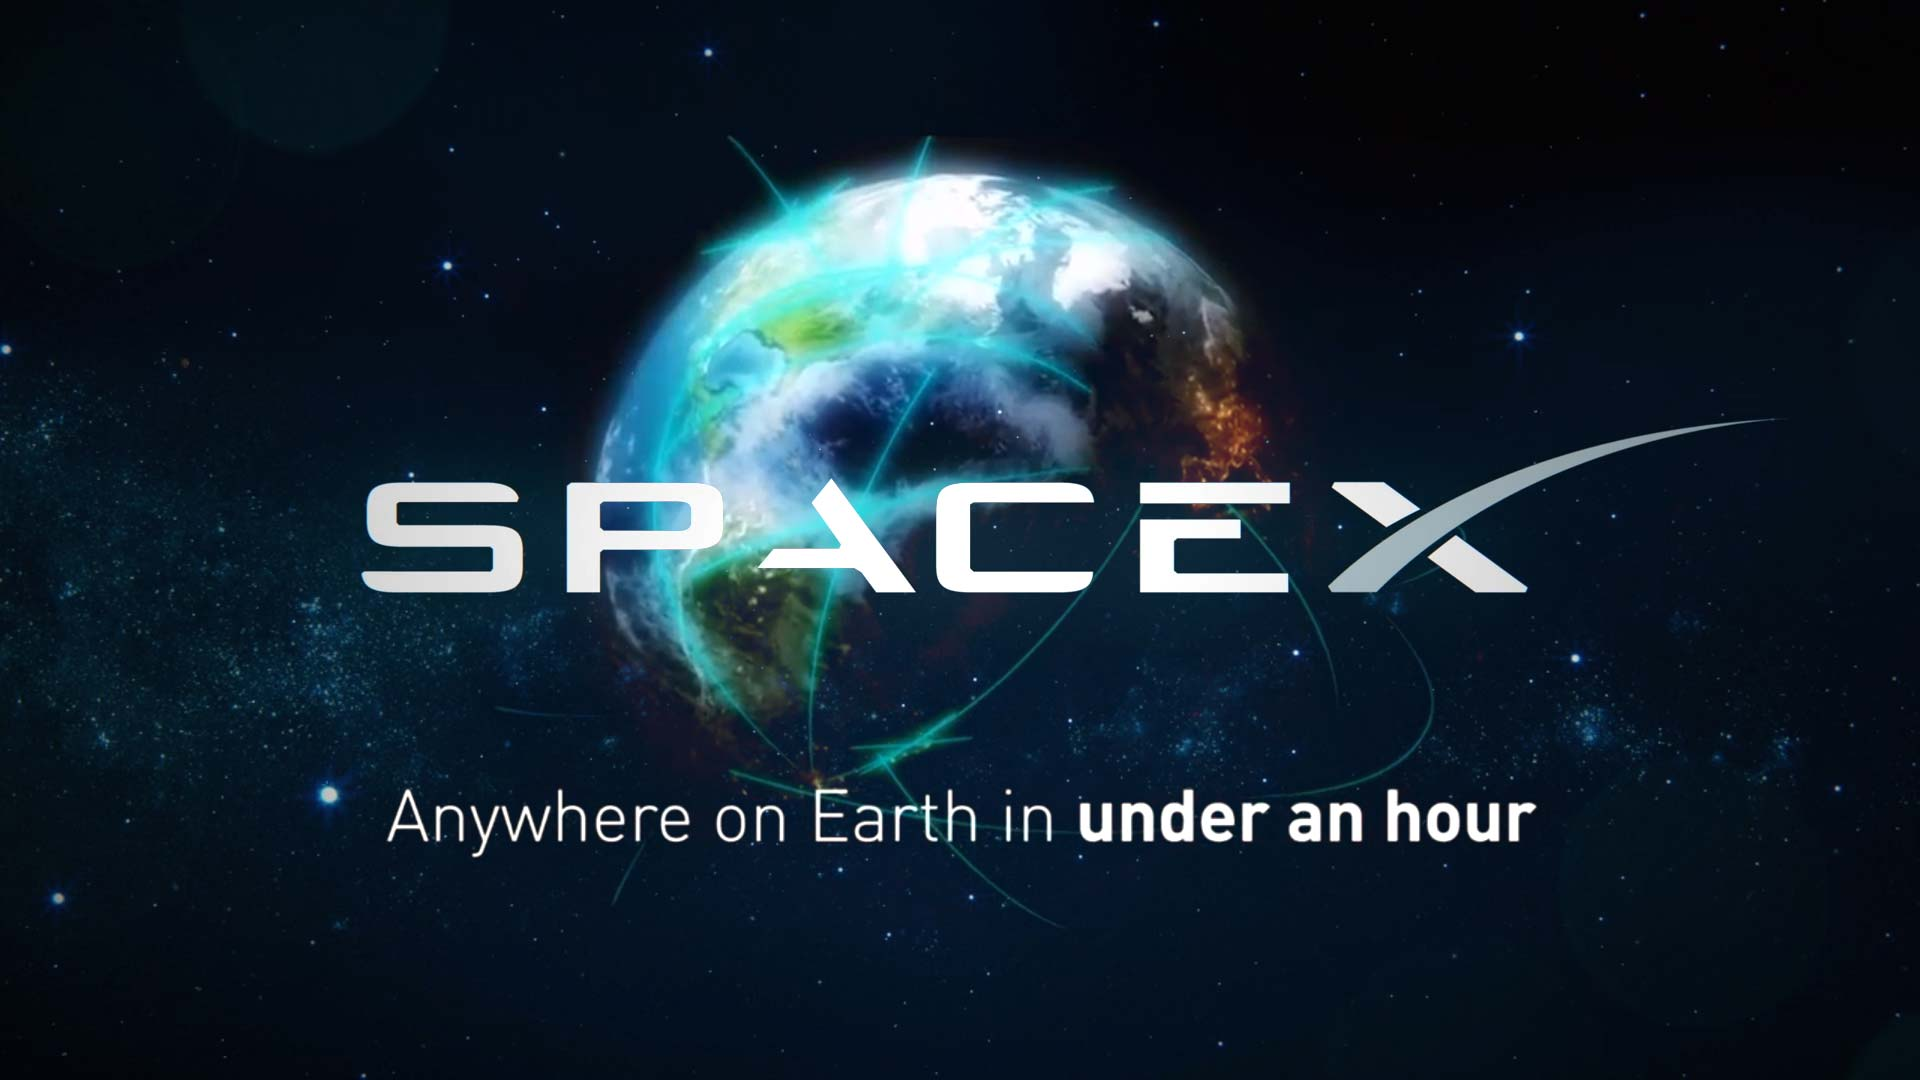 Anywhere-on-Earth-in-under-an-hour-SPACEX